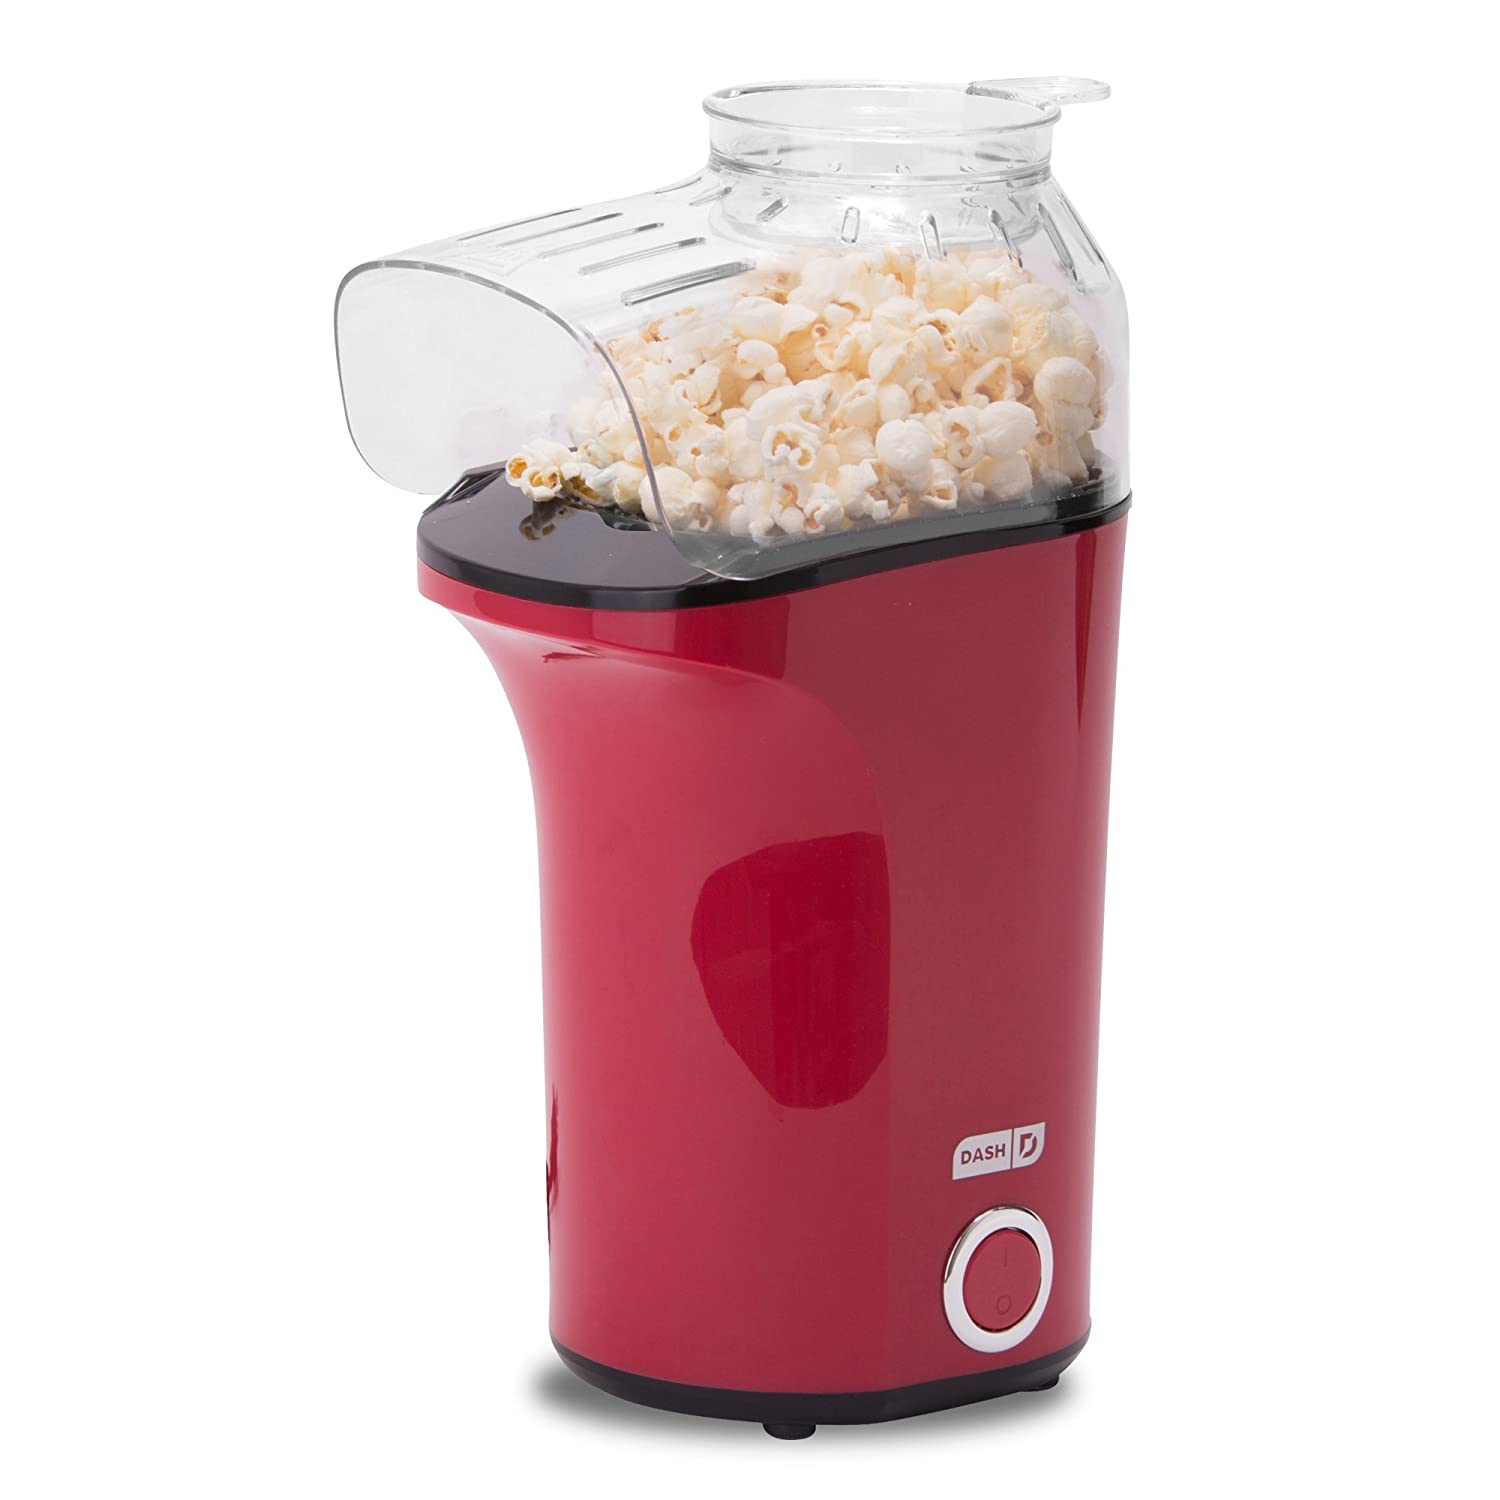 DASH Popcorn Machine: Hot Air Popcorn Popper + Popcorn Maker with Measuring Cup to Measure Popcorn Kernels + Melt Butter - Red